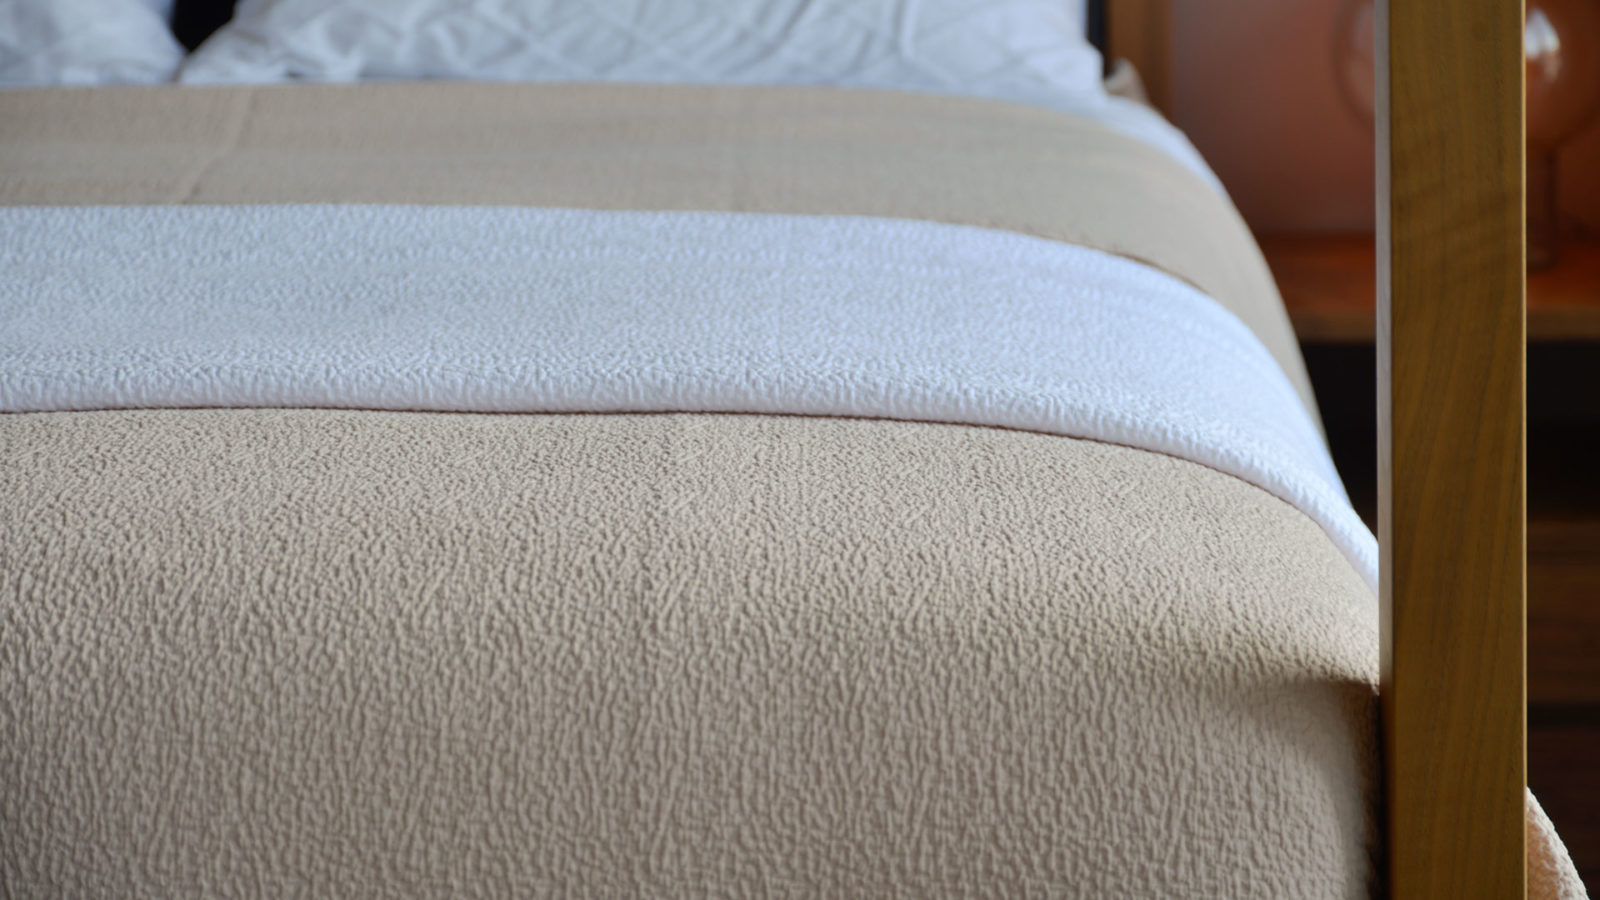 Bedspreads With Dappled Texture - Lightweight textured bedspreads in white or shell peach